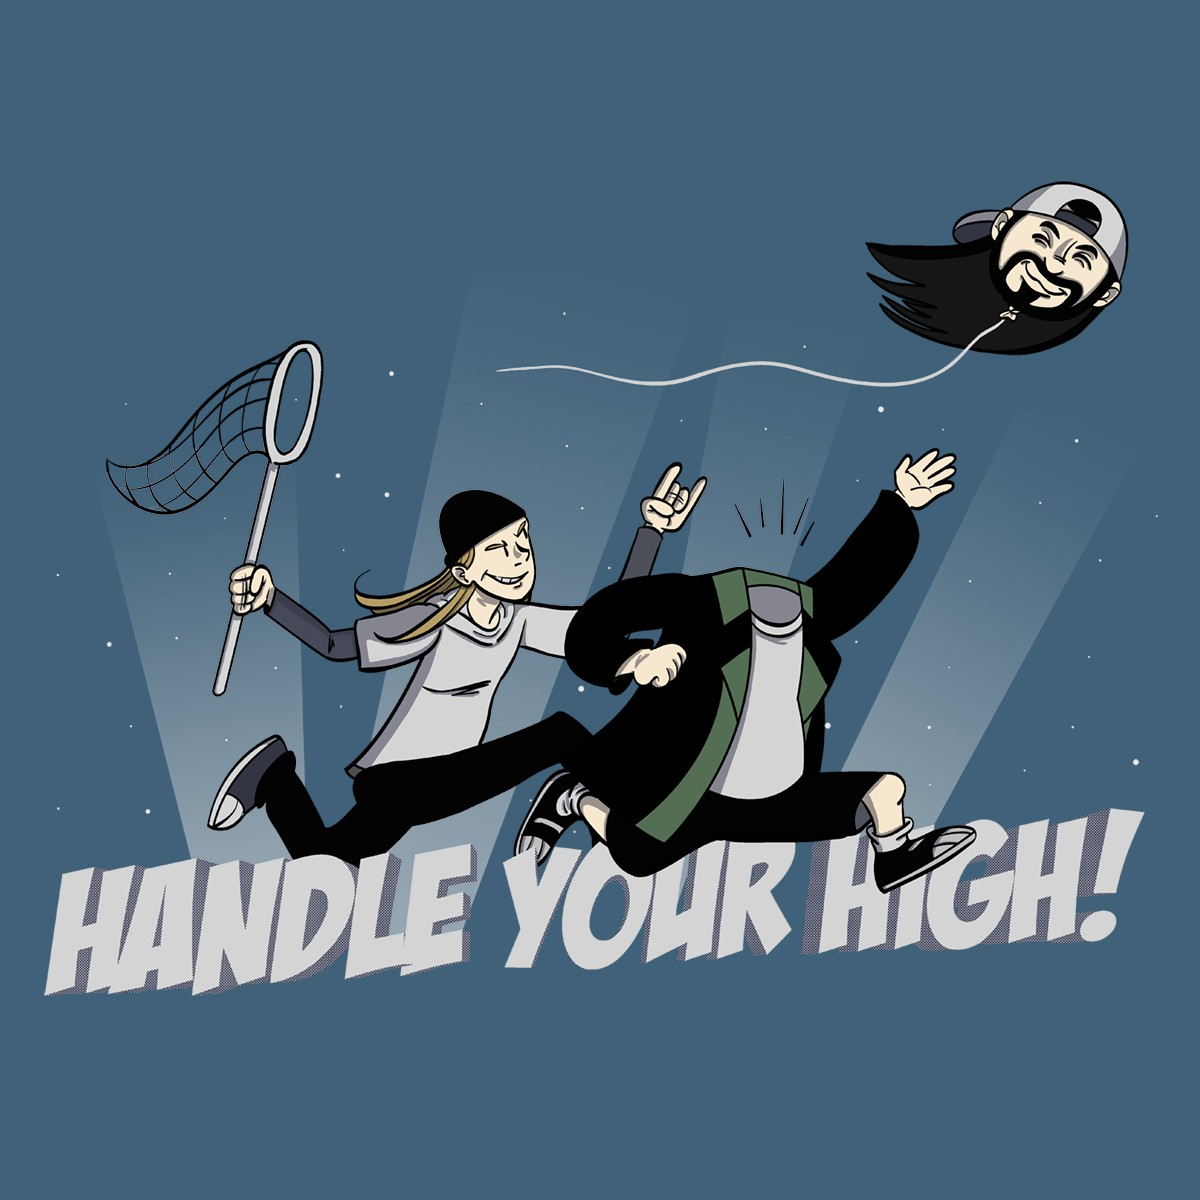 Handle Your High